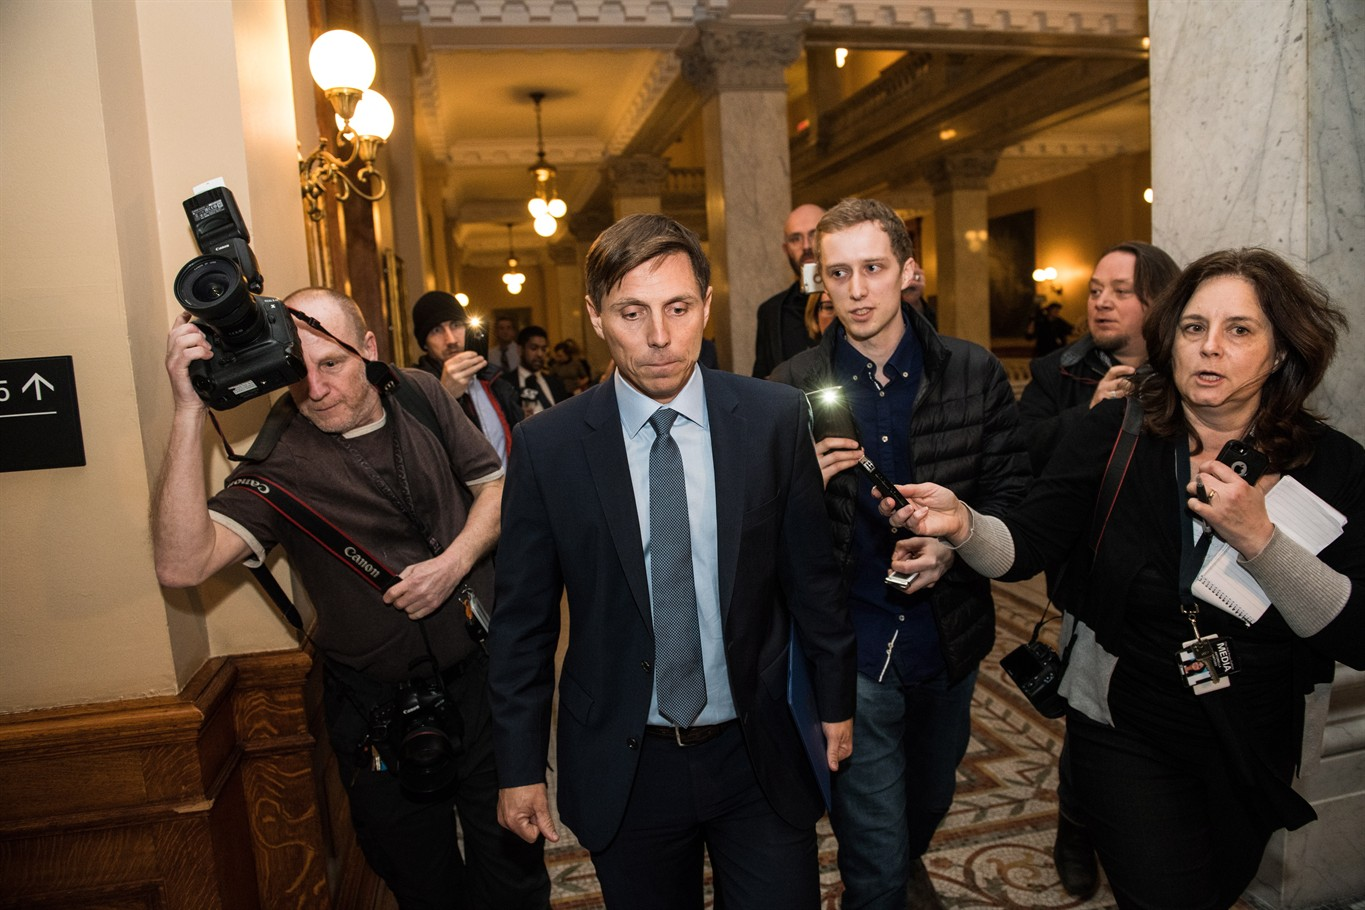 Two women come forward with graphic sexual misconduct allegations against Patrick Brown